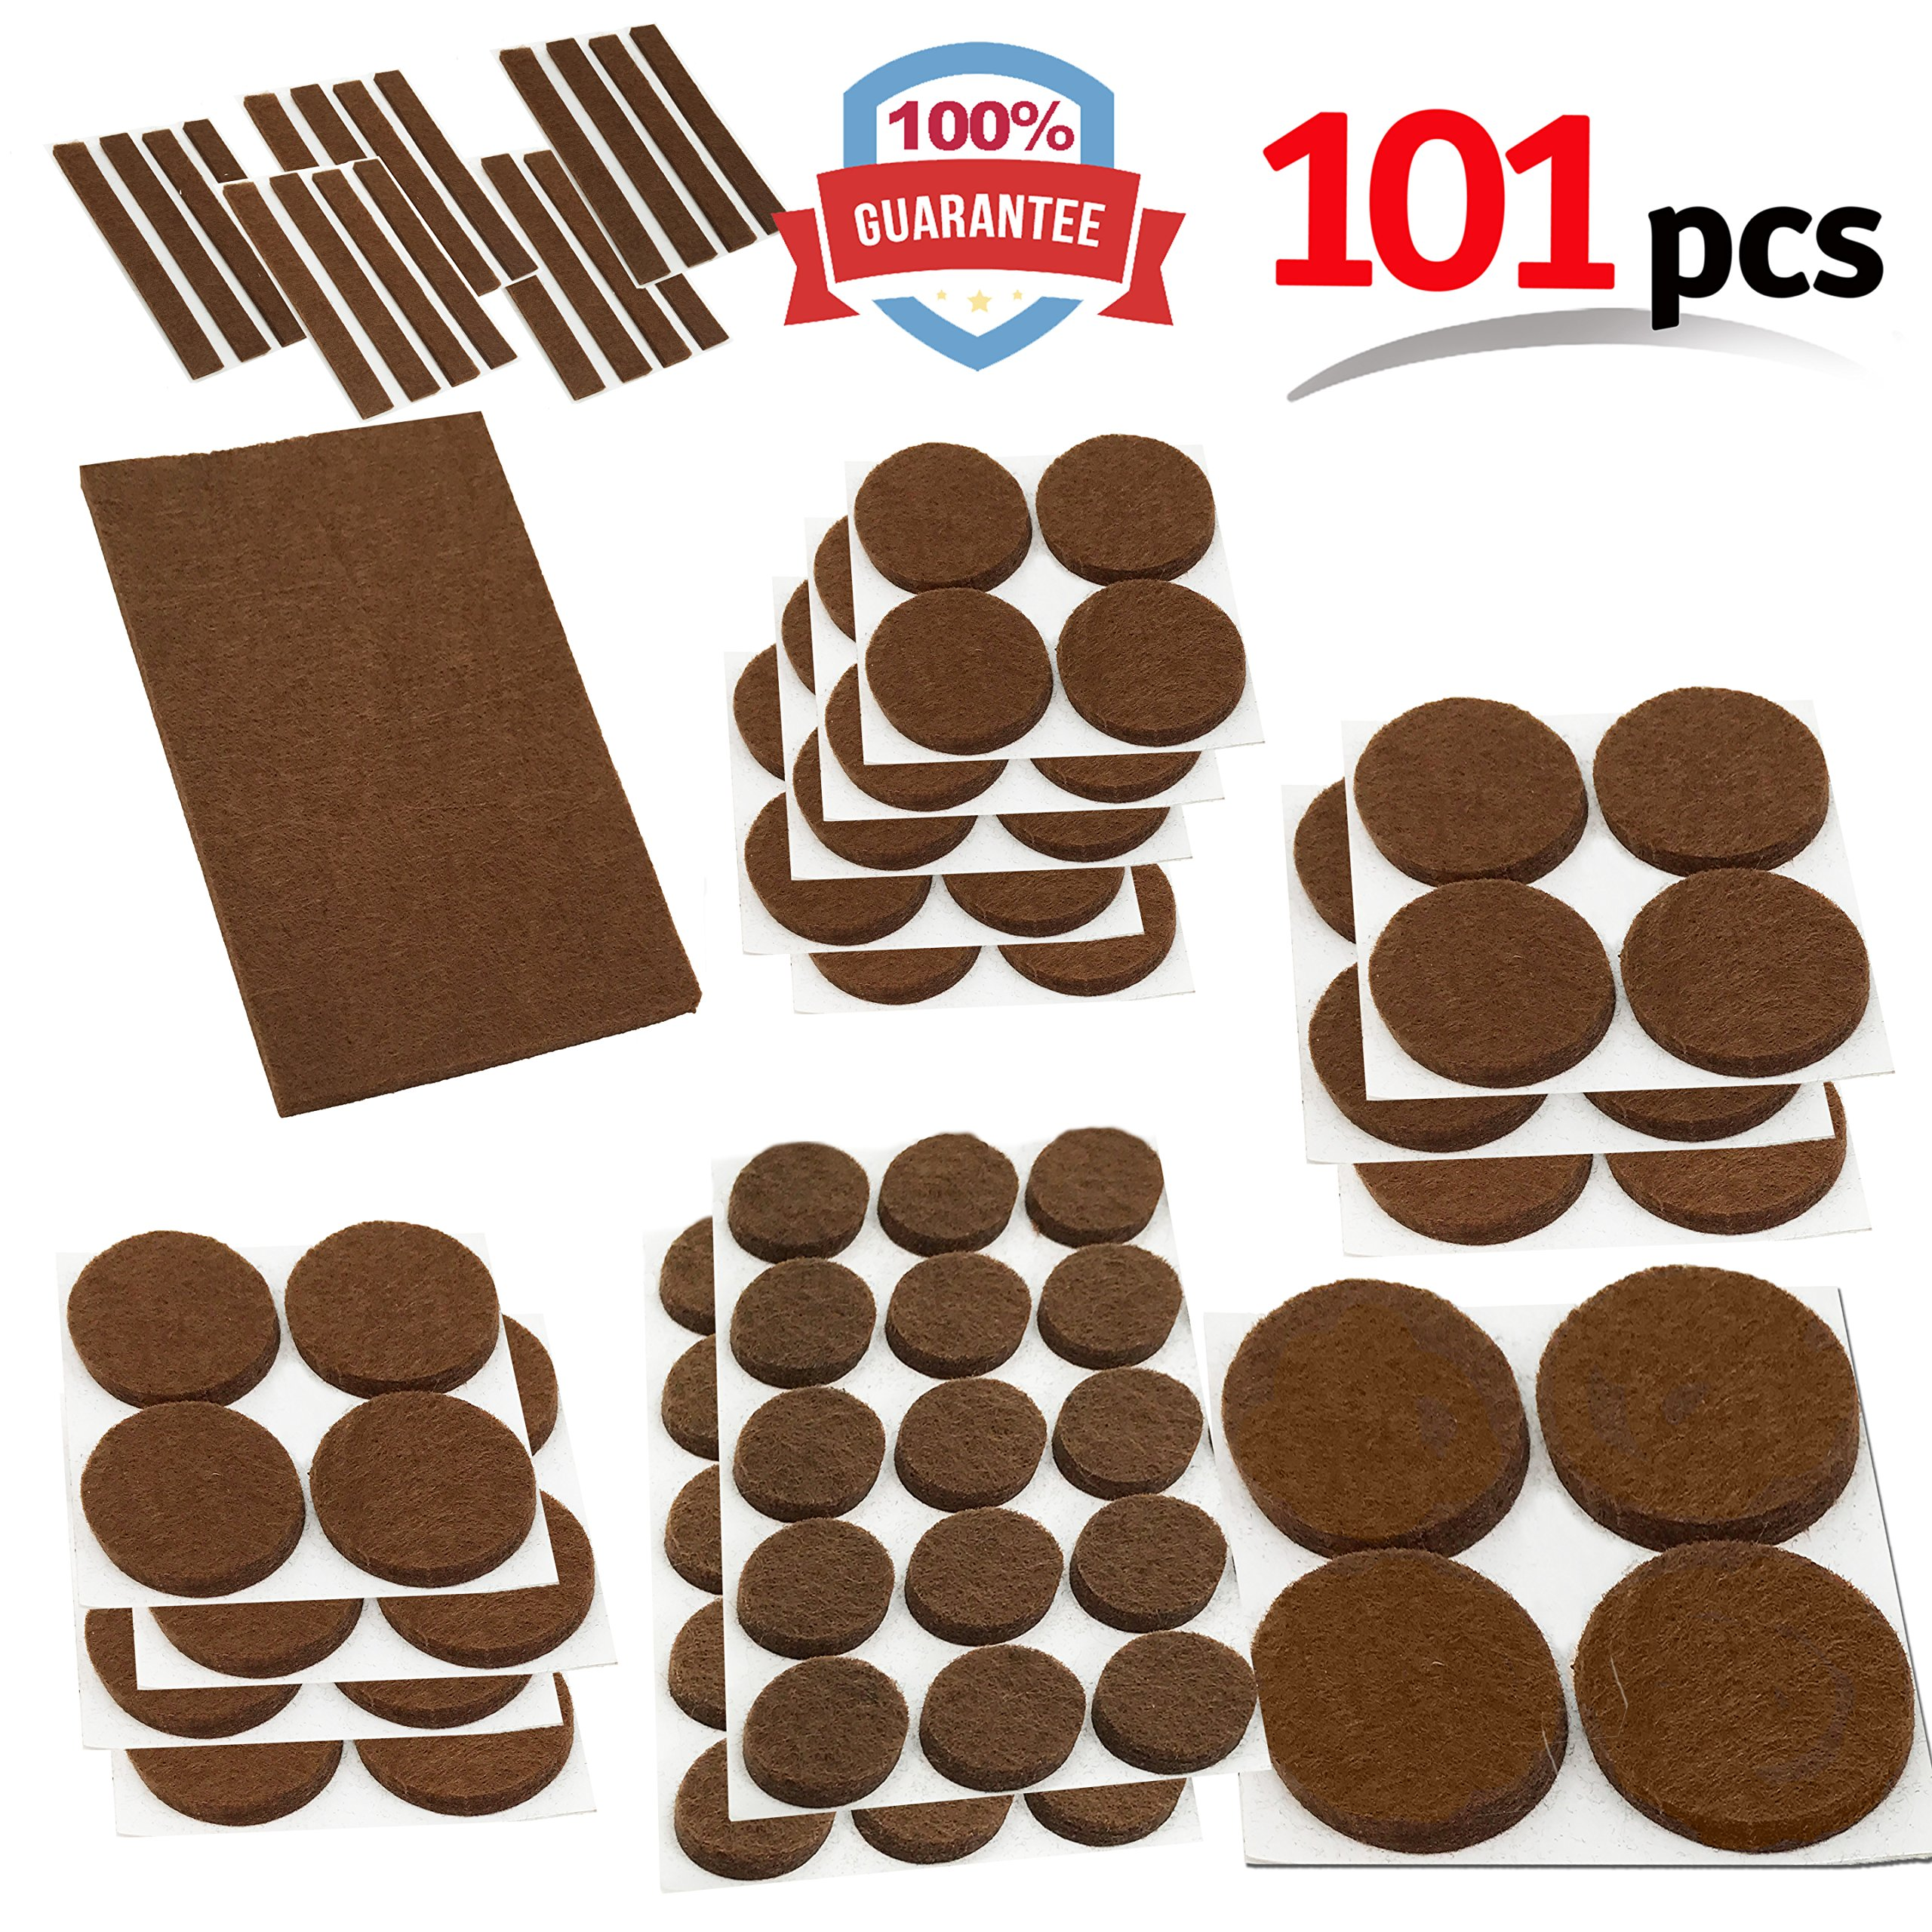 Mighty X Heavy Duty Felt Furniture Pad Protectors by iPrimio - Pack 101 Pcs, Place Under Furniture Legs, Feet, Dining Table, Couches, Vases. Protect Hardwood Floors. Protect All Surfaces. Brown